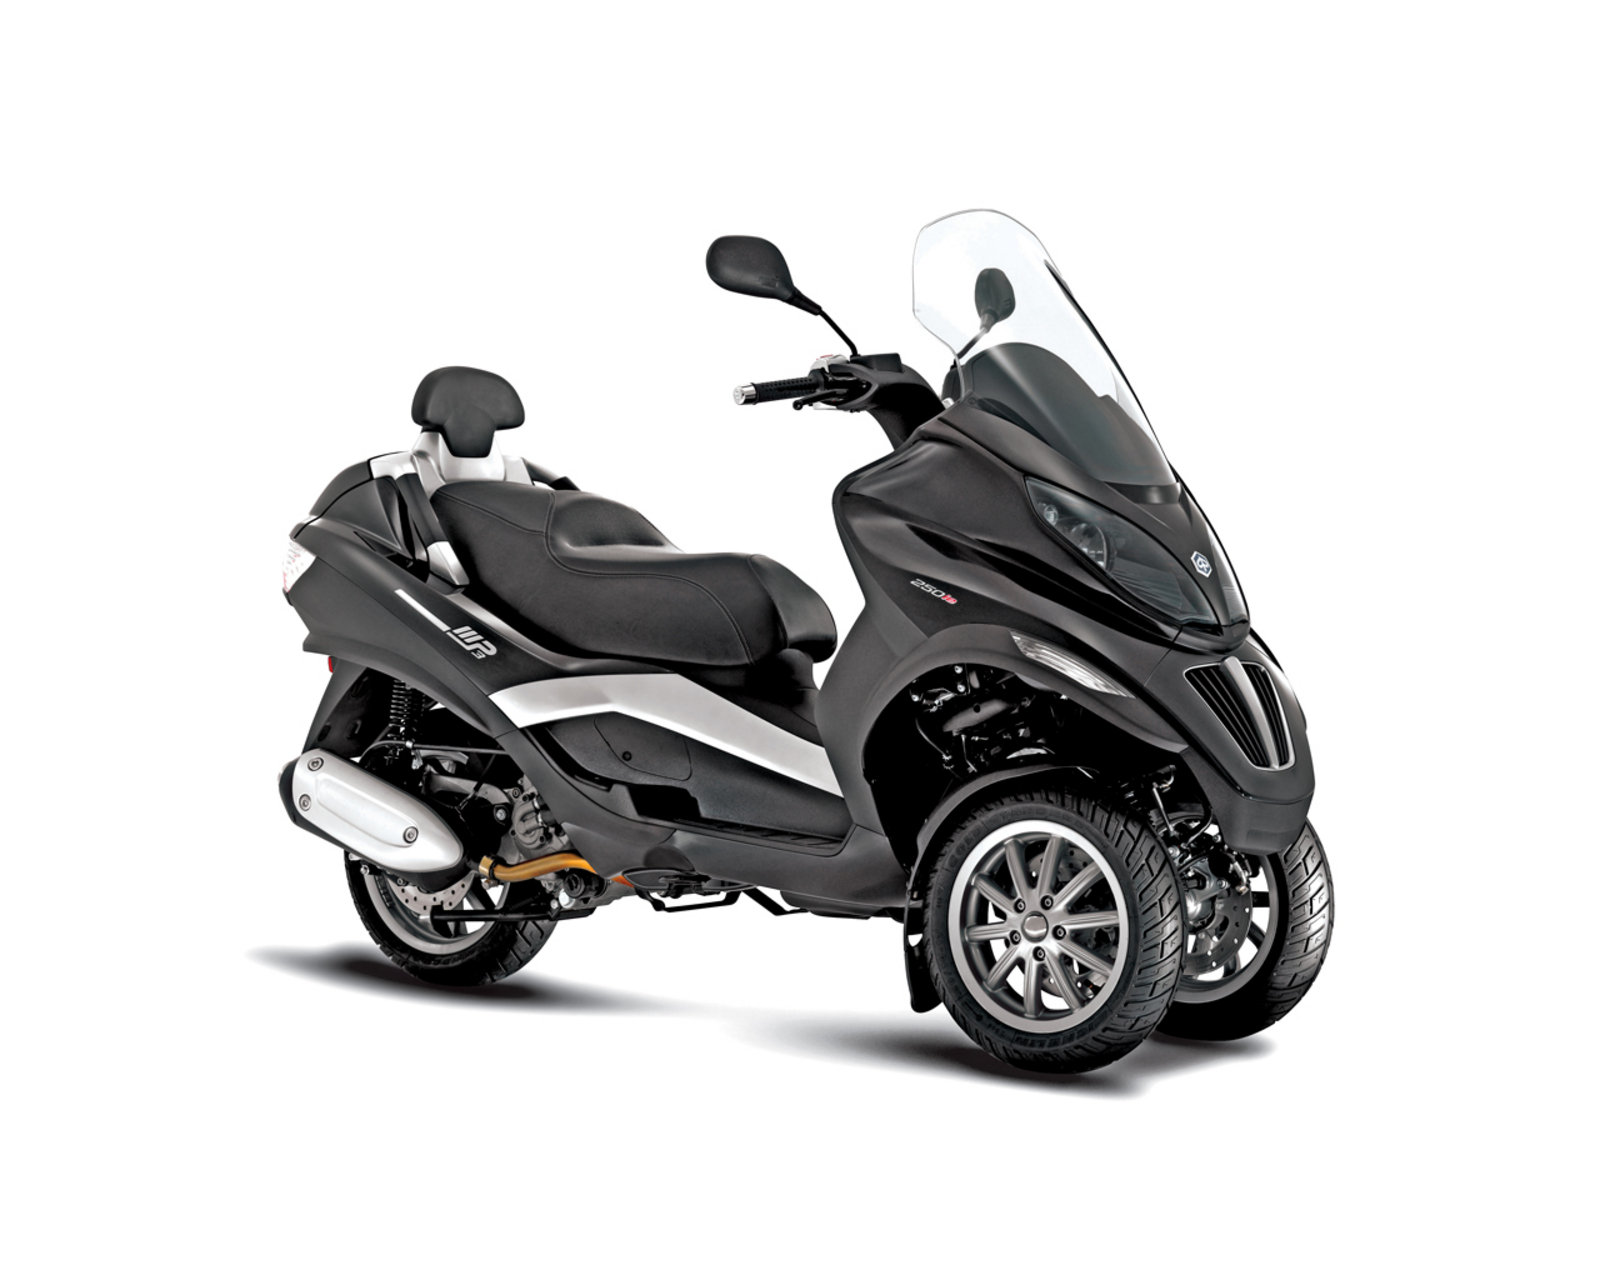 2012 piaggio mp3 250 review gallery top speed. Black Bedroom Furniture Sets. Home Design Ideas